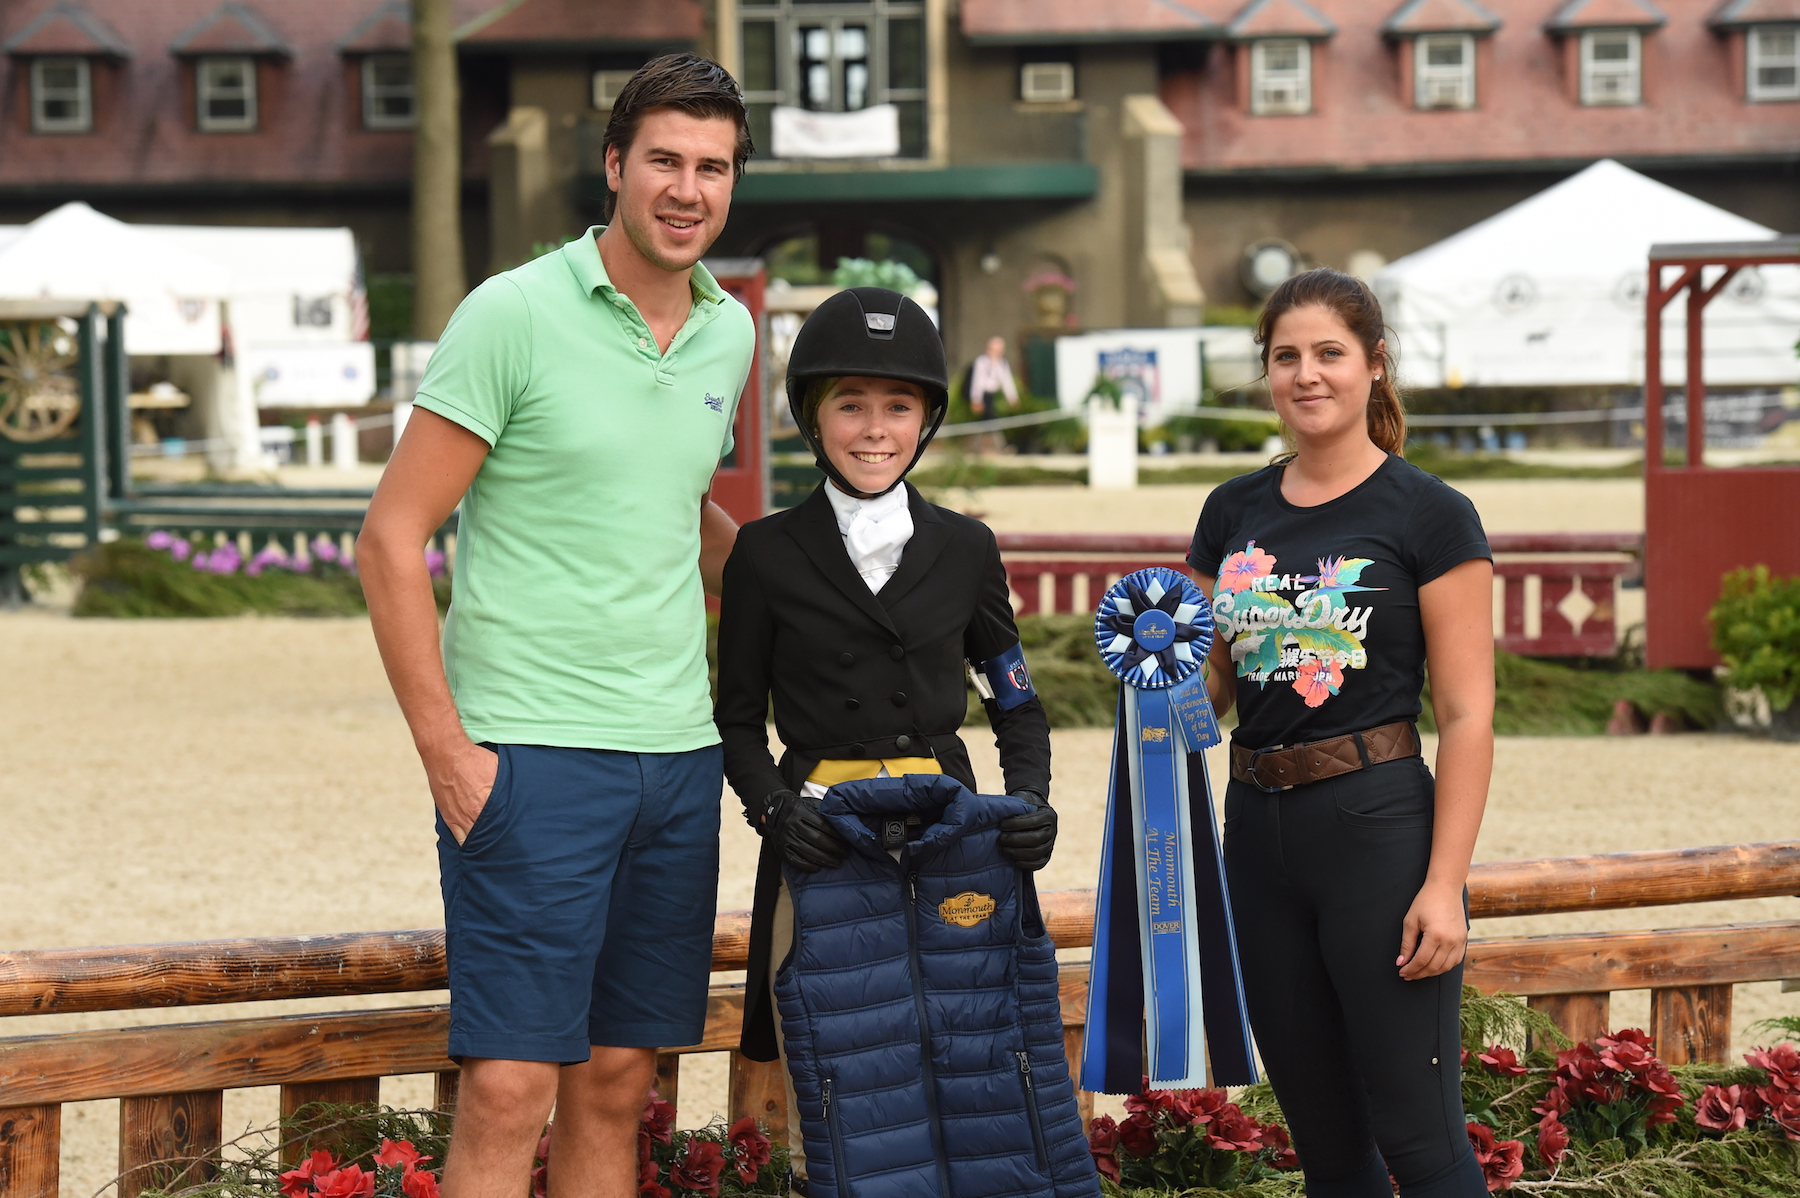 Emma Sameth received the Top Trip of the Day award from Niels Haesen and Maxime Tyteca from Stal de Eyckenhoeve. Photo by Anne Gittins